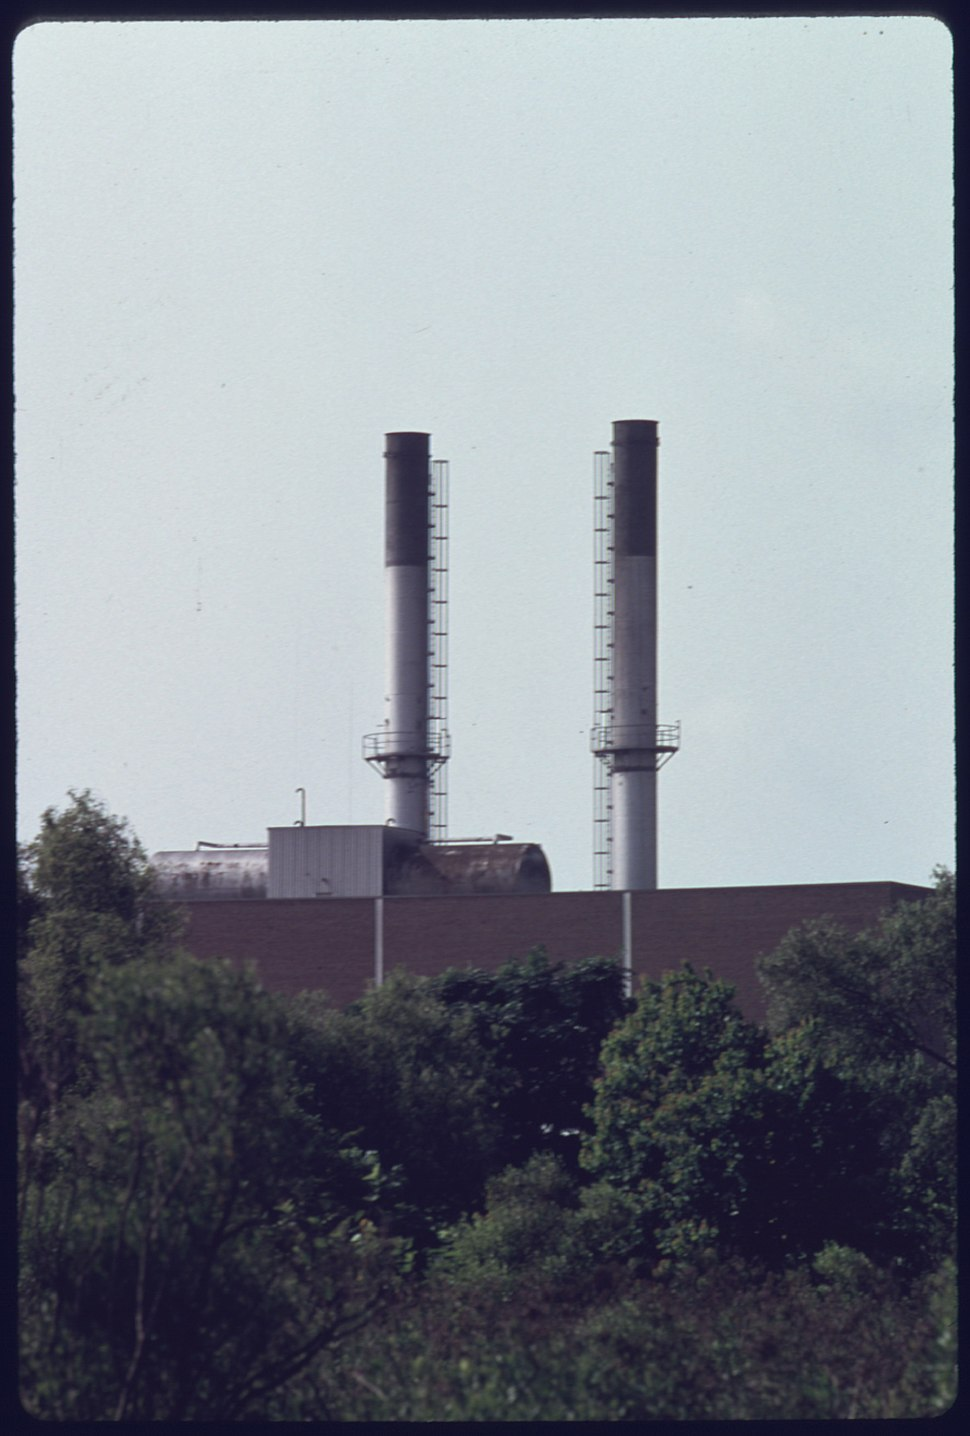 SMOKESTACKS OF THE HOLMES ROAD INCINERATOR, NO LONGER POLLUTE THE ATMOSPHERE. THE PLANT PREVIOUSLY BURNED OLD... - NARA - 557411